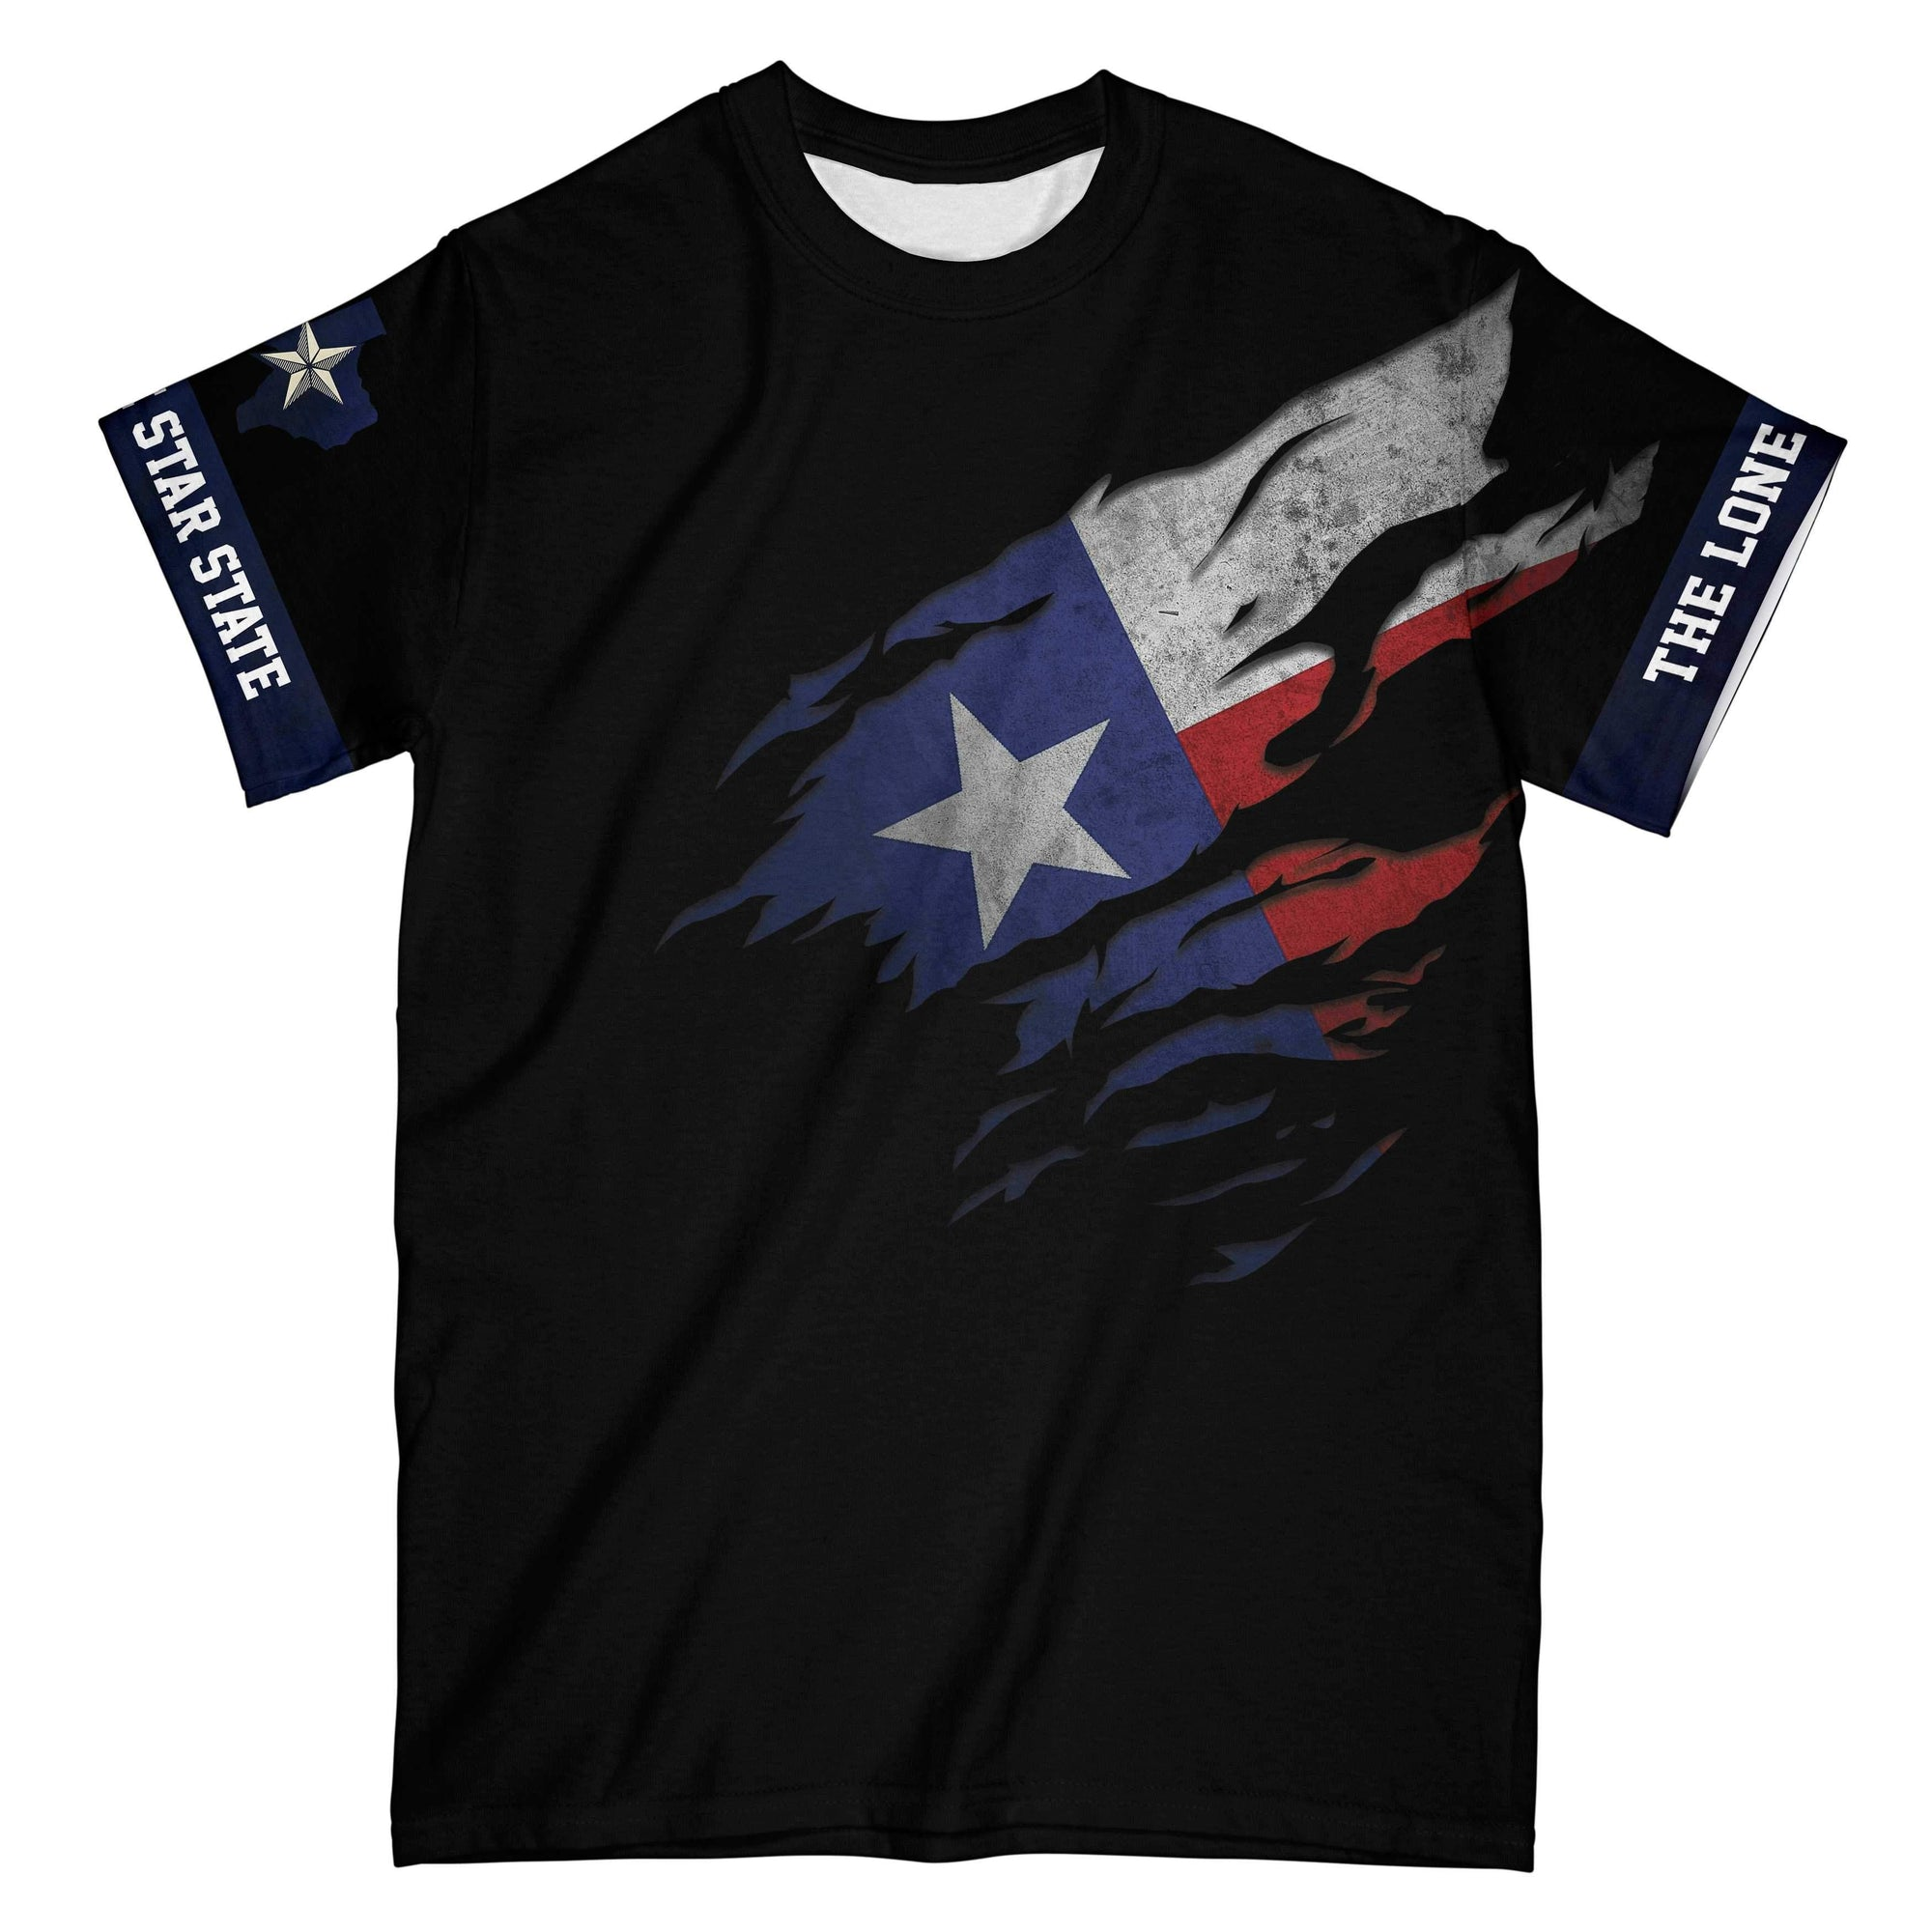 Texas The Lone Star State EZ16 0203 All Over Print T-Shirt